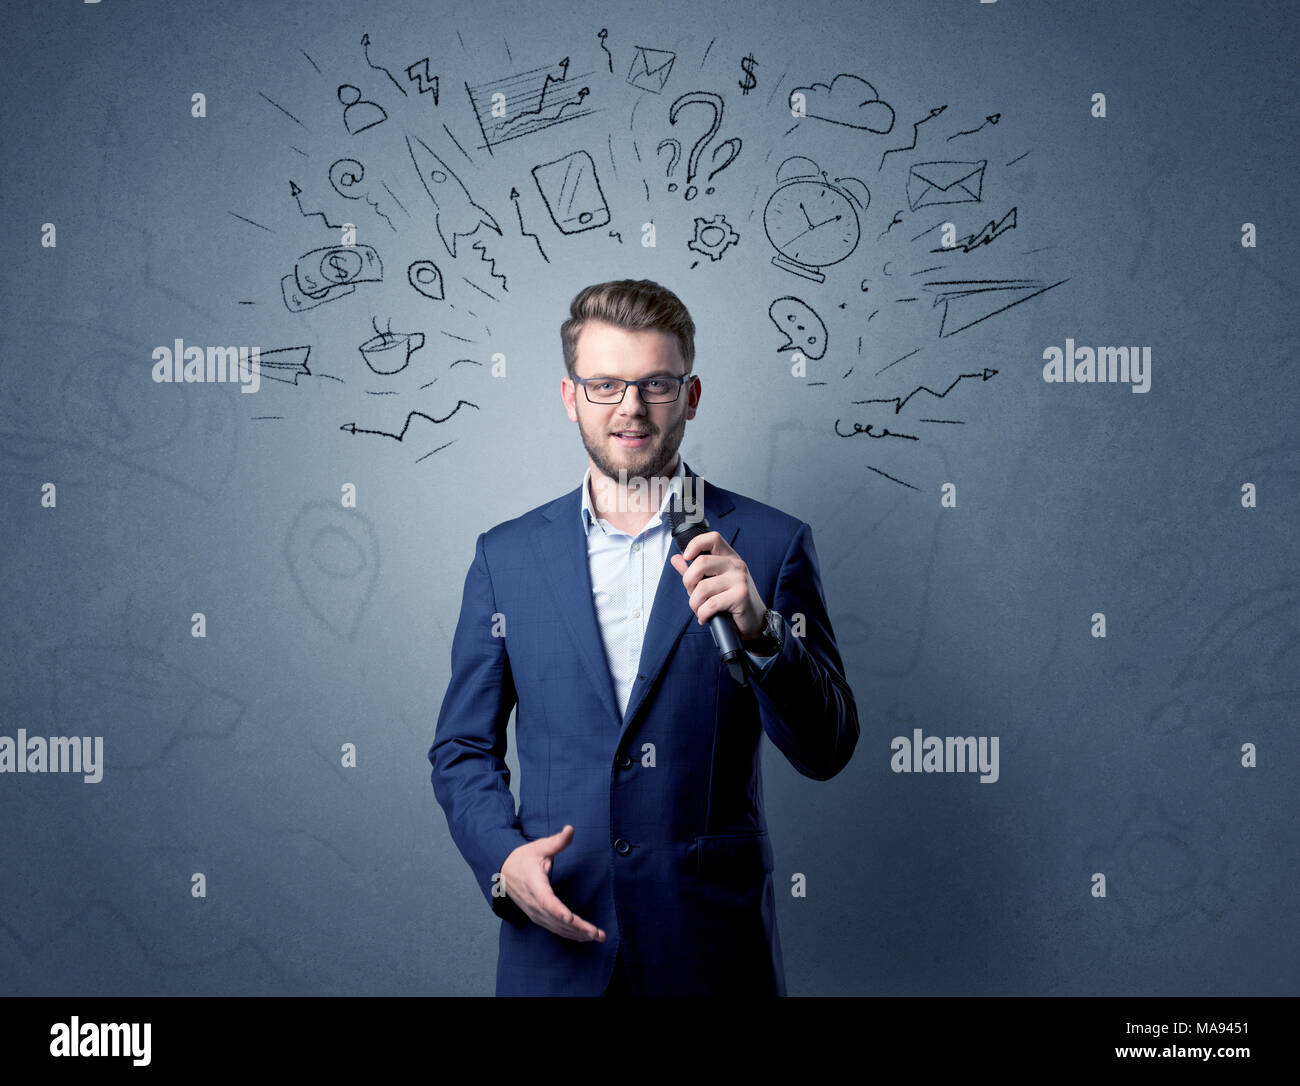 Businessman speaking into microphone with mixed doodles over his head Stock Photo